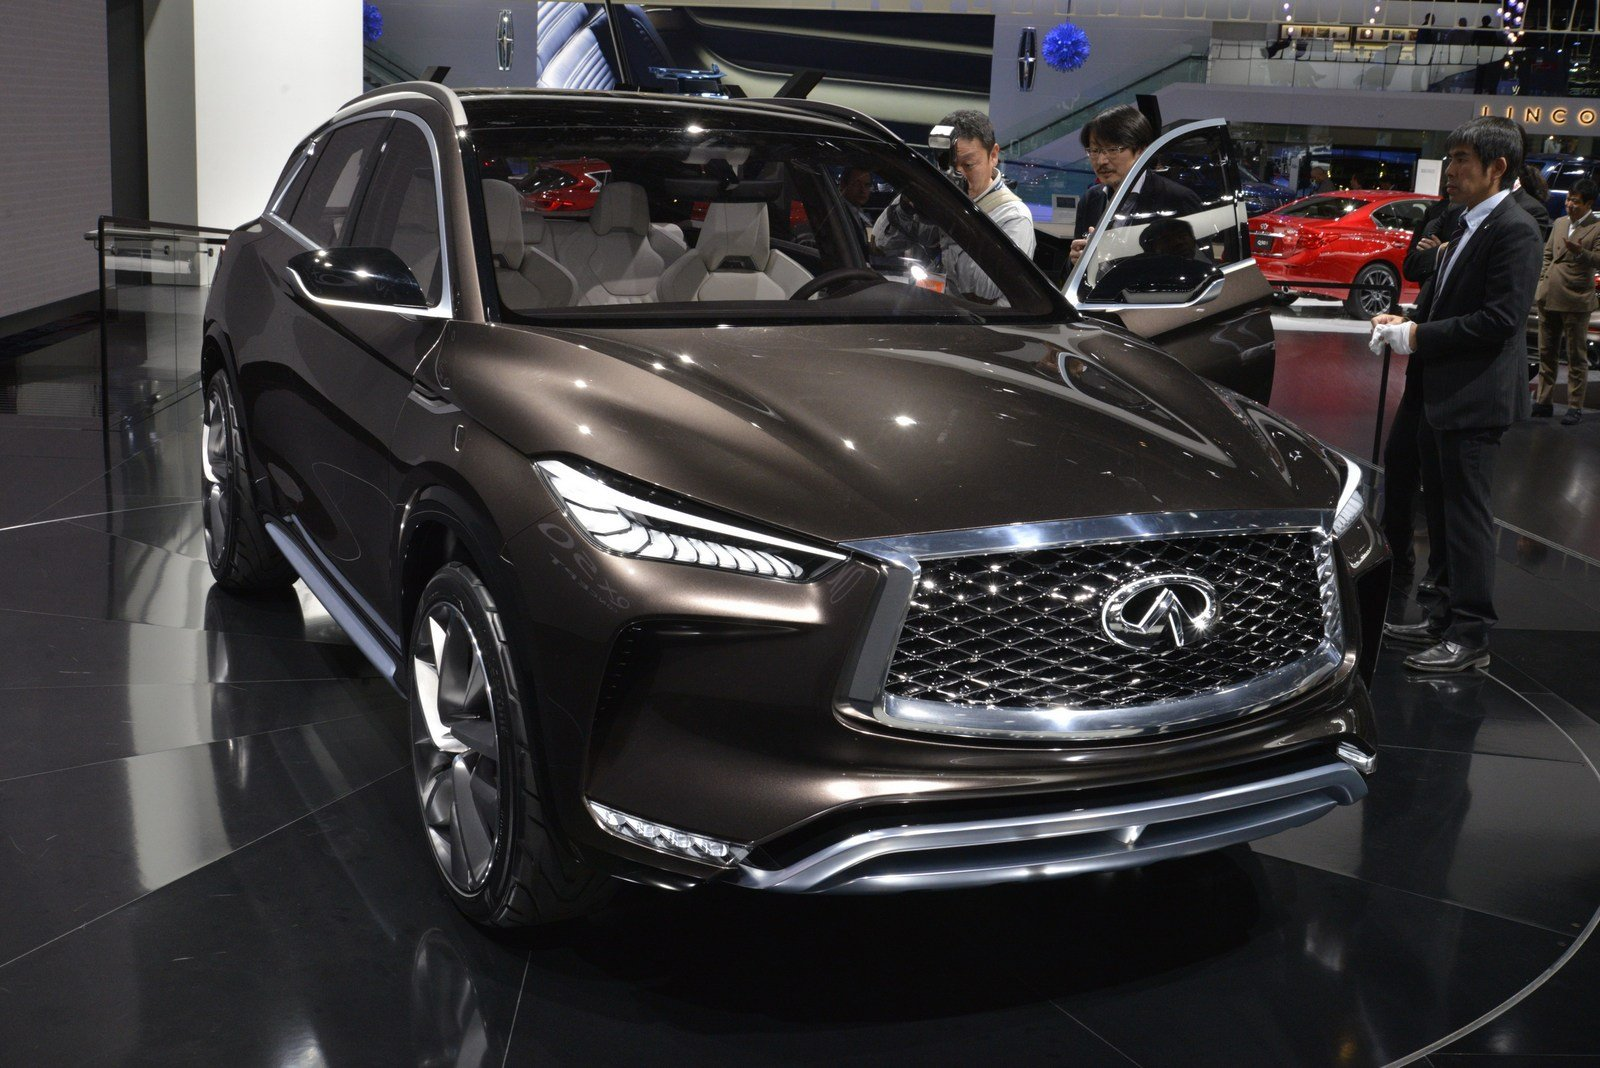 2017 infiniti qx50 concept picture 701139 car review top speed. Black Bedroom Furniture Sets. Home Design Ideas